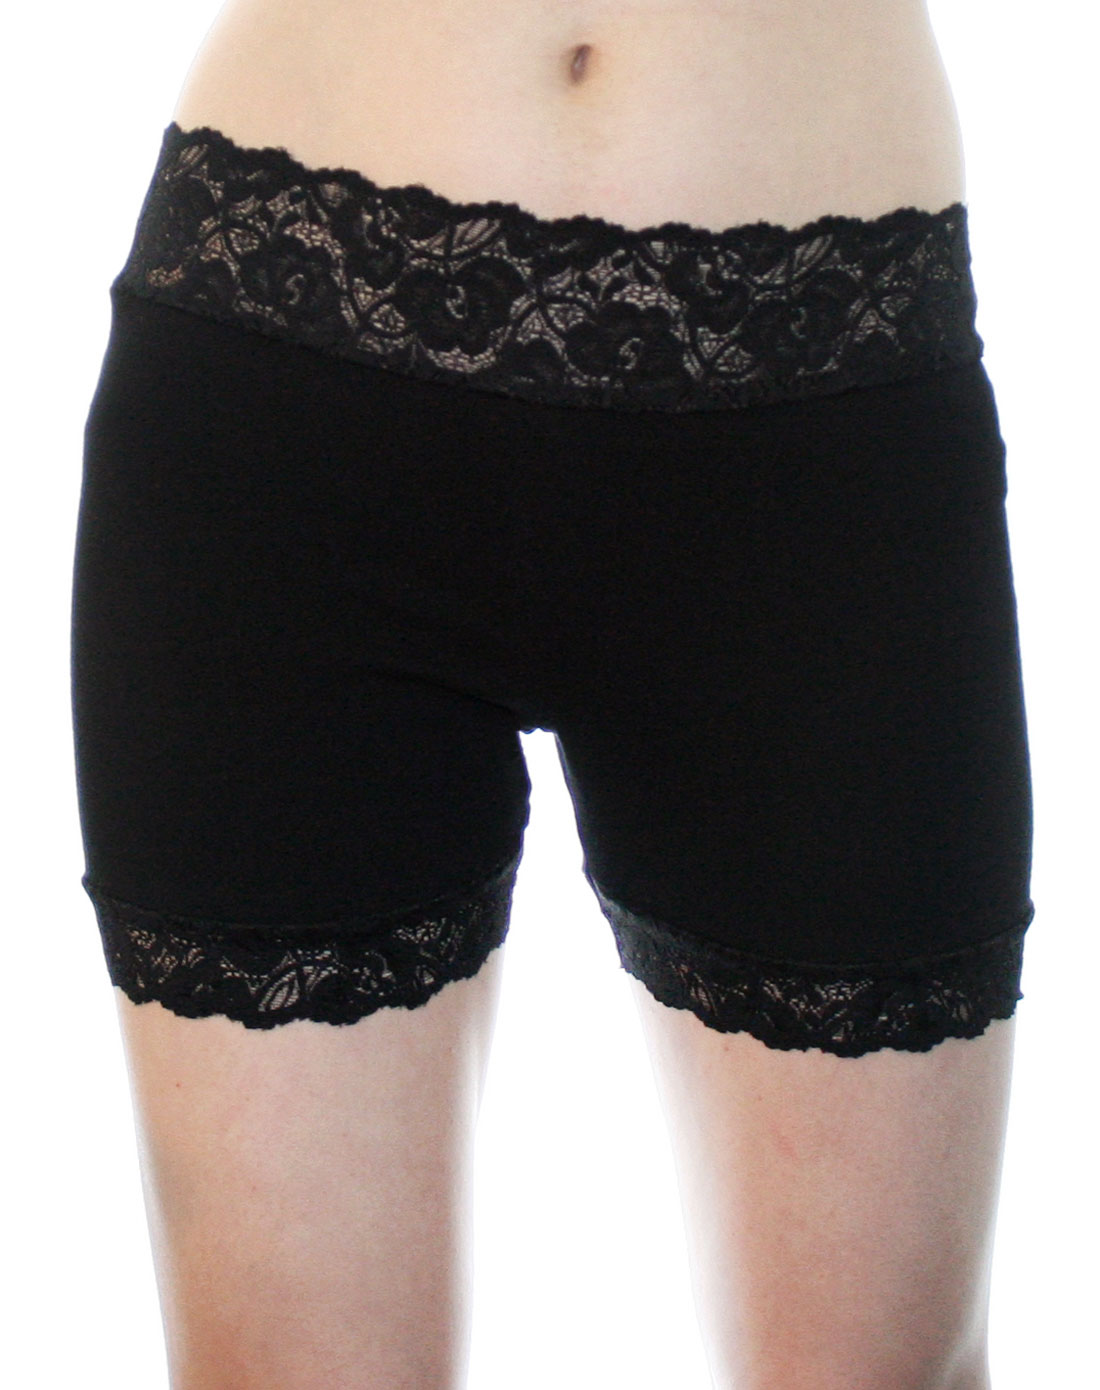 The Do Tell Black Lace Shorts have woven black fabric creating an elegant exterior with black eyelash lace trimming the hems and climbing up the front/5(20).